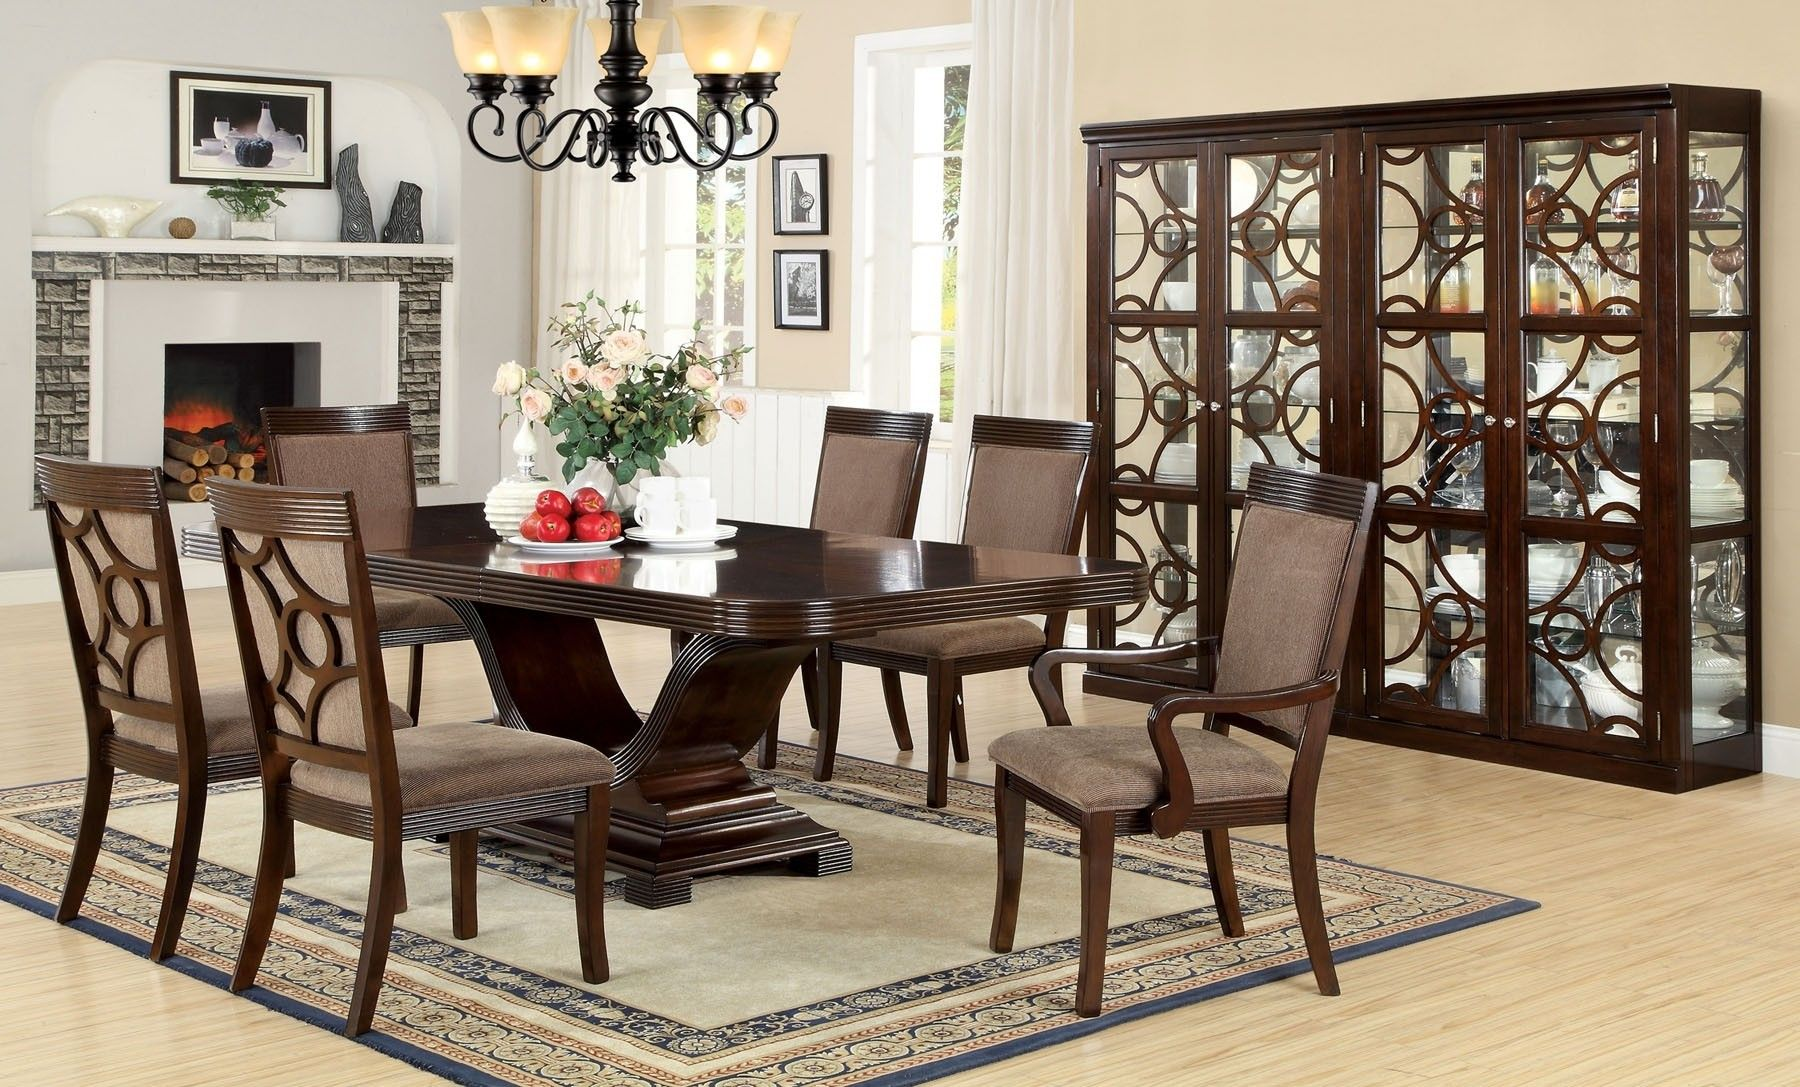 Furniture of America Woodmont Dining Room Set in Walnut in 9 ...